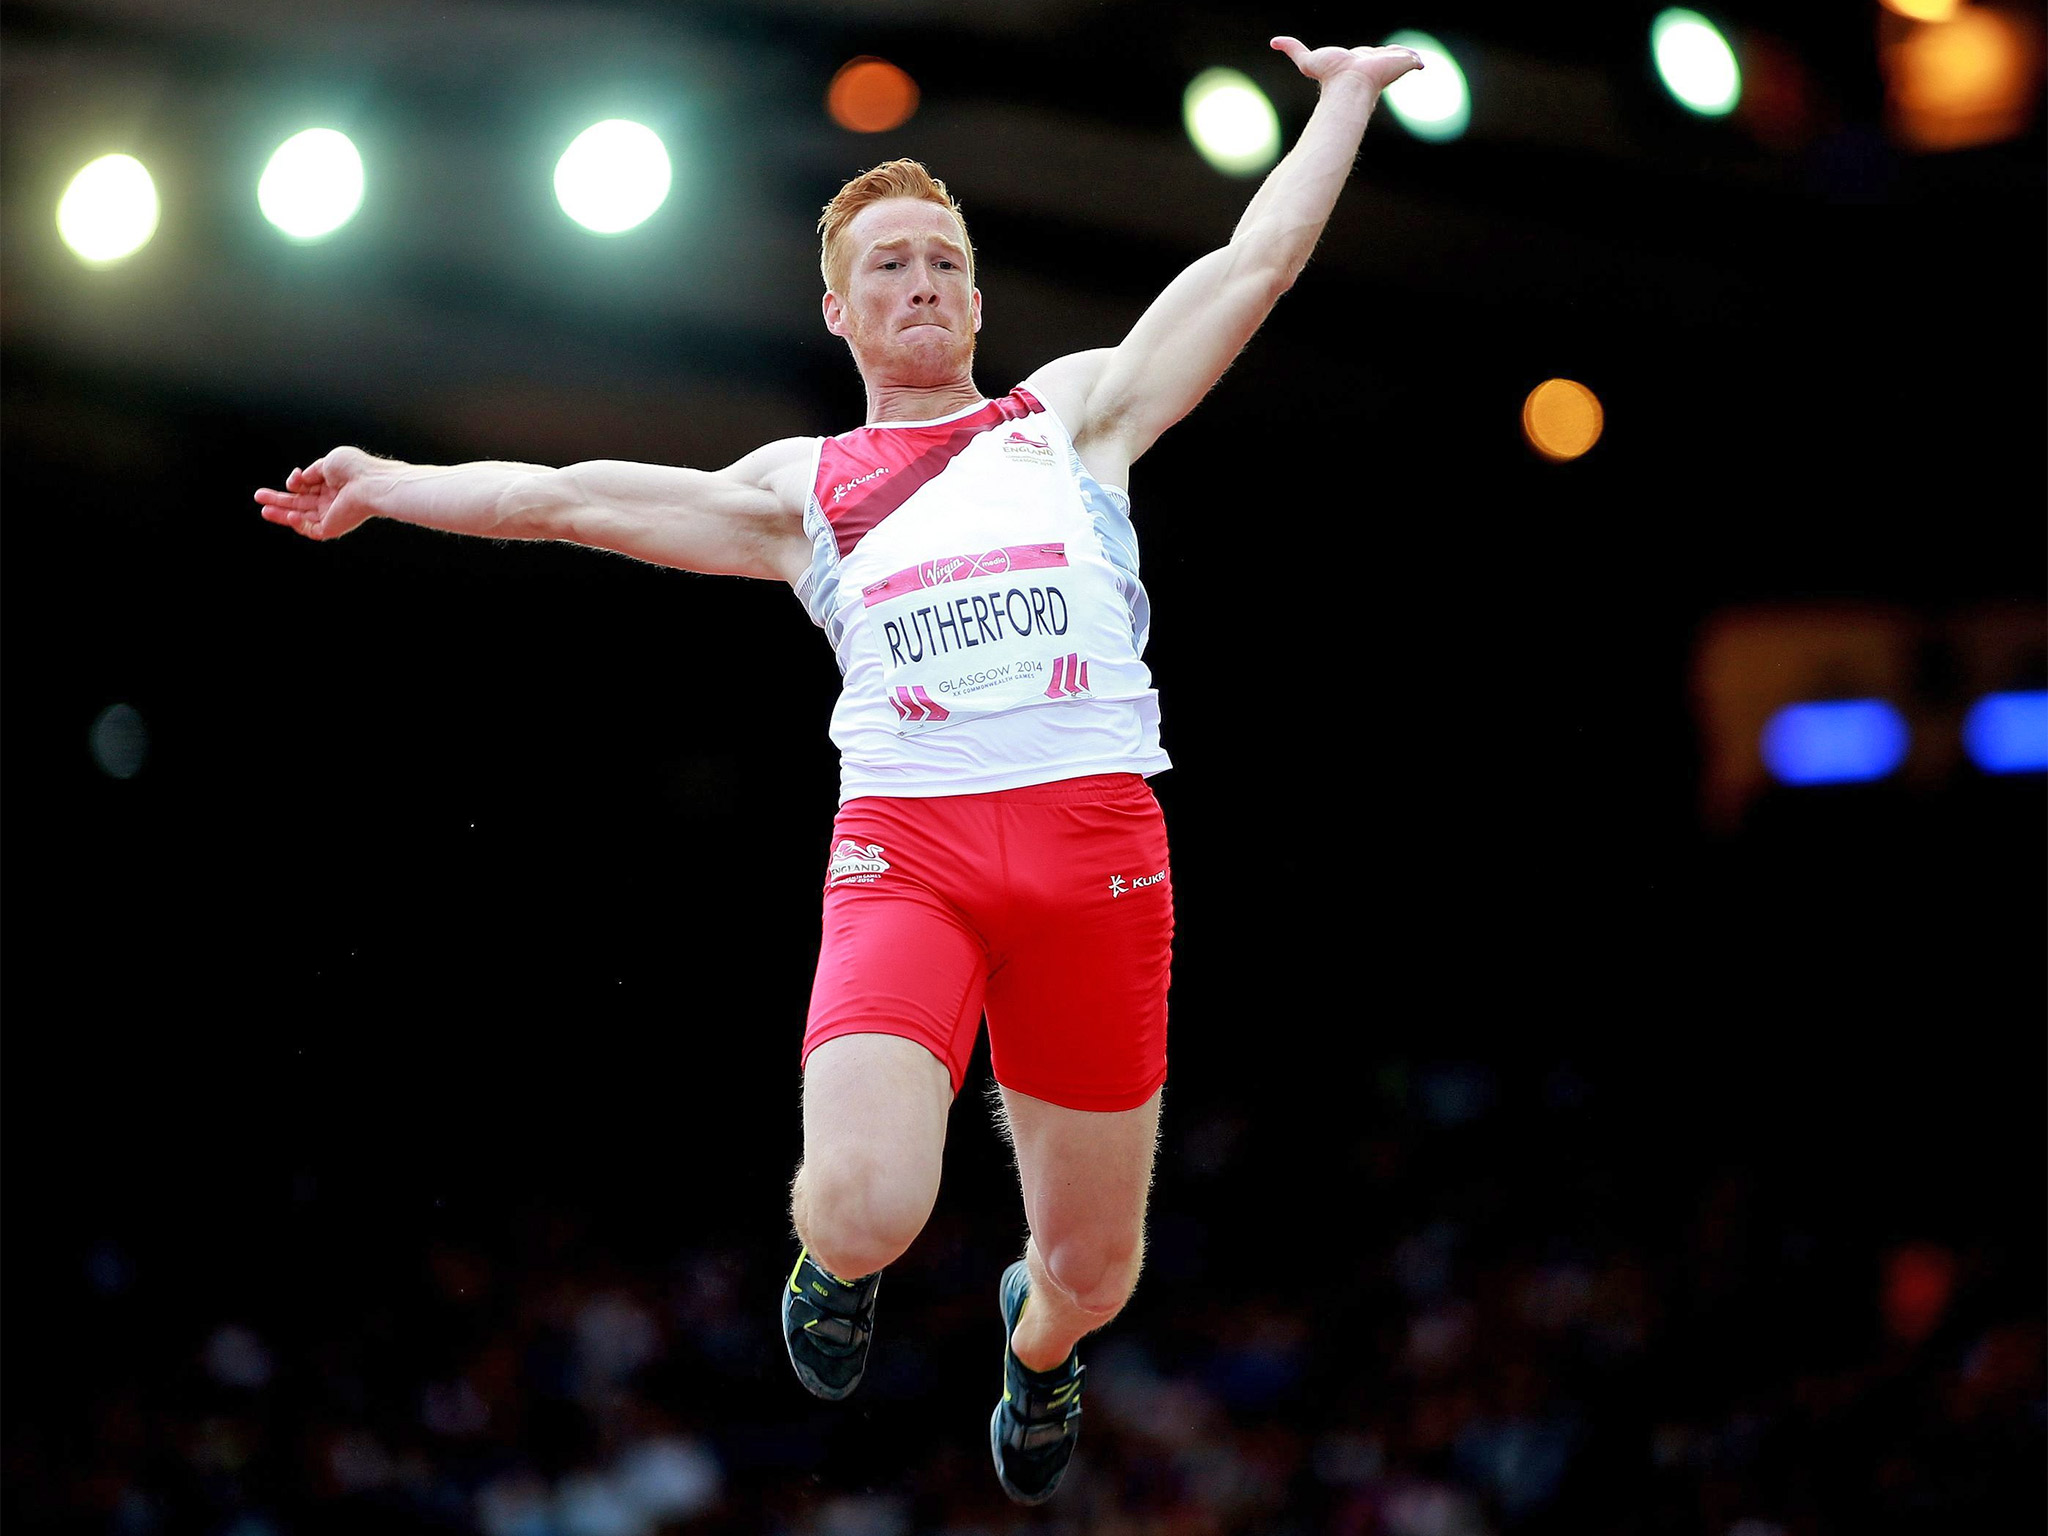 2048x1536 - Greg Rutherford Wallpapers 5